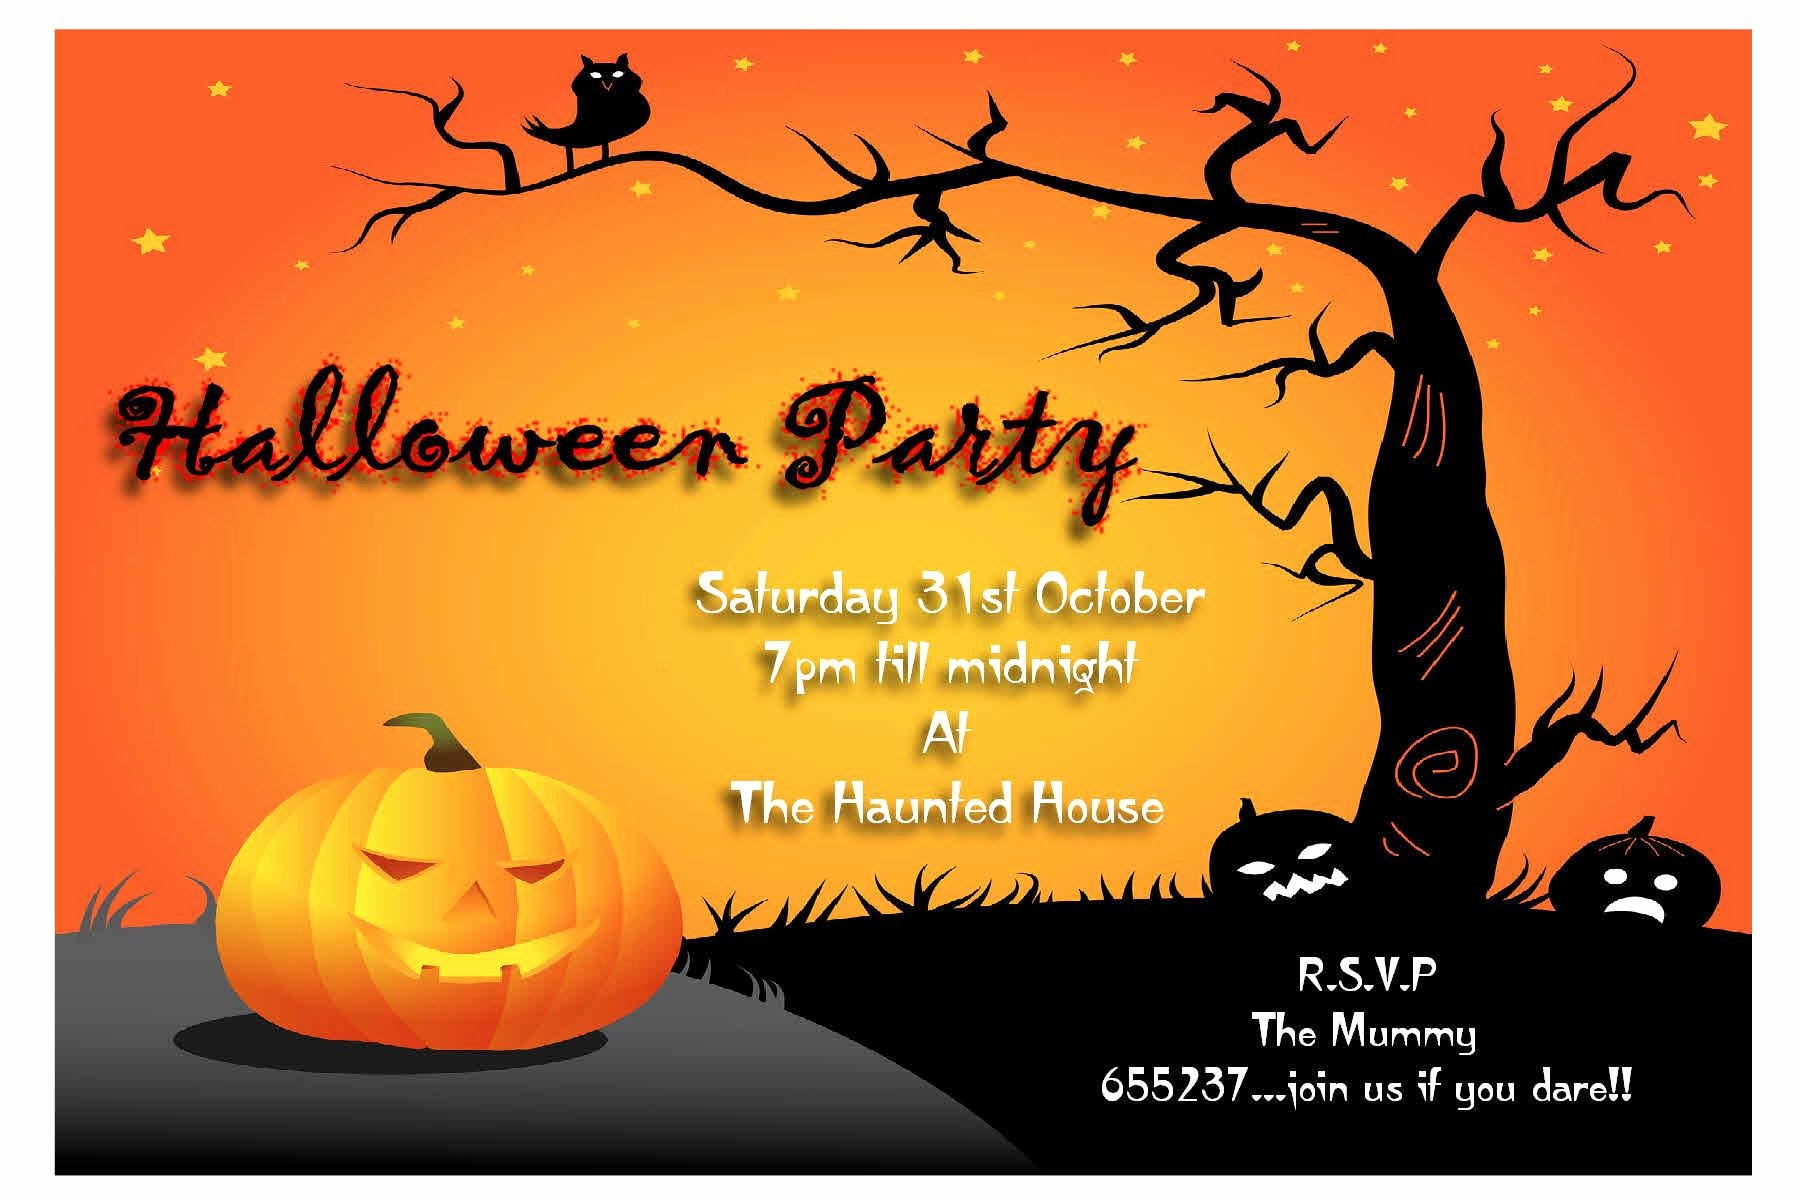 Halloween Party Invitations Template Lovely Halloween Party Invitation Wording